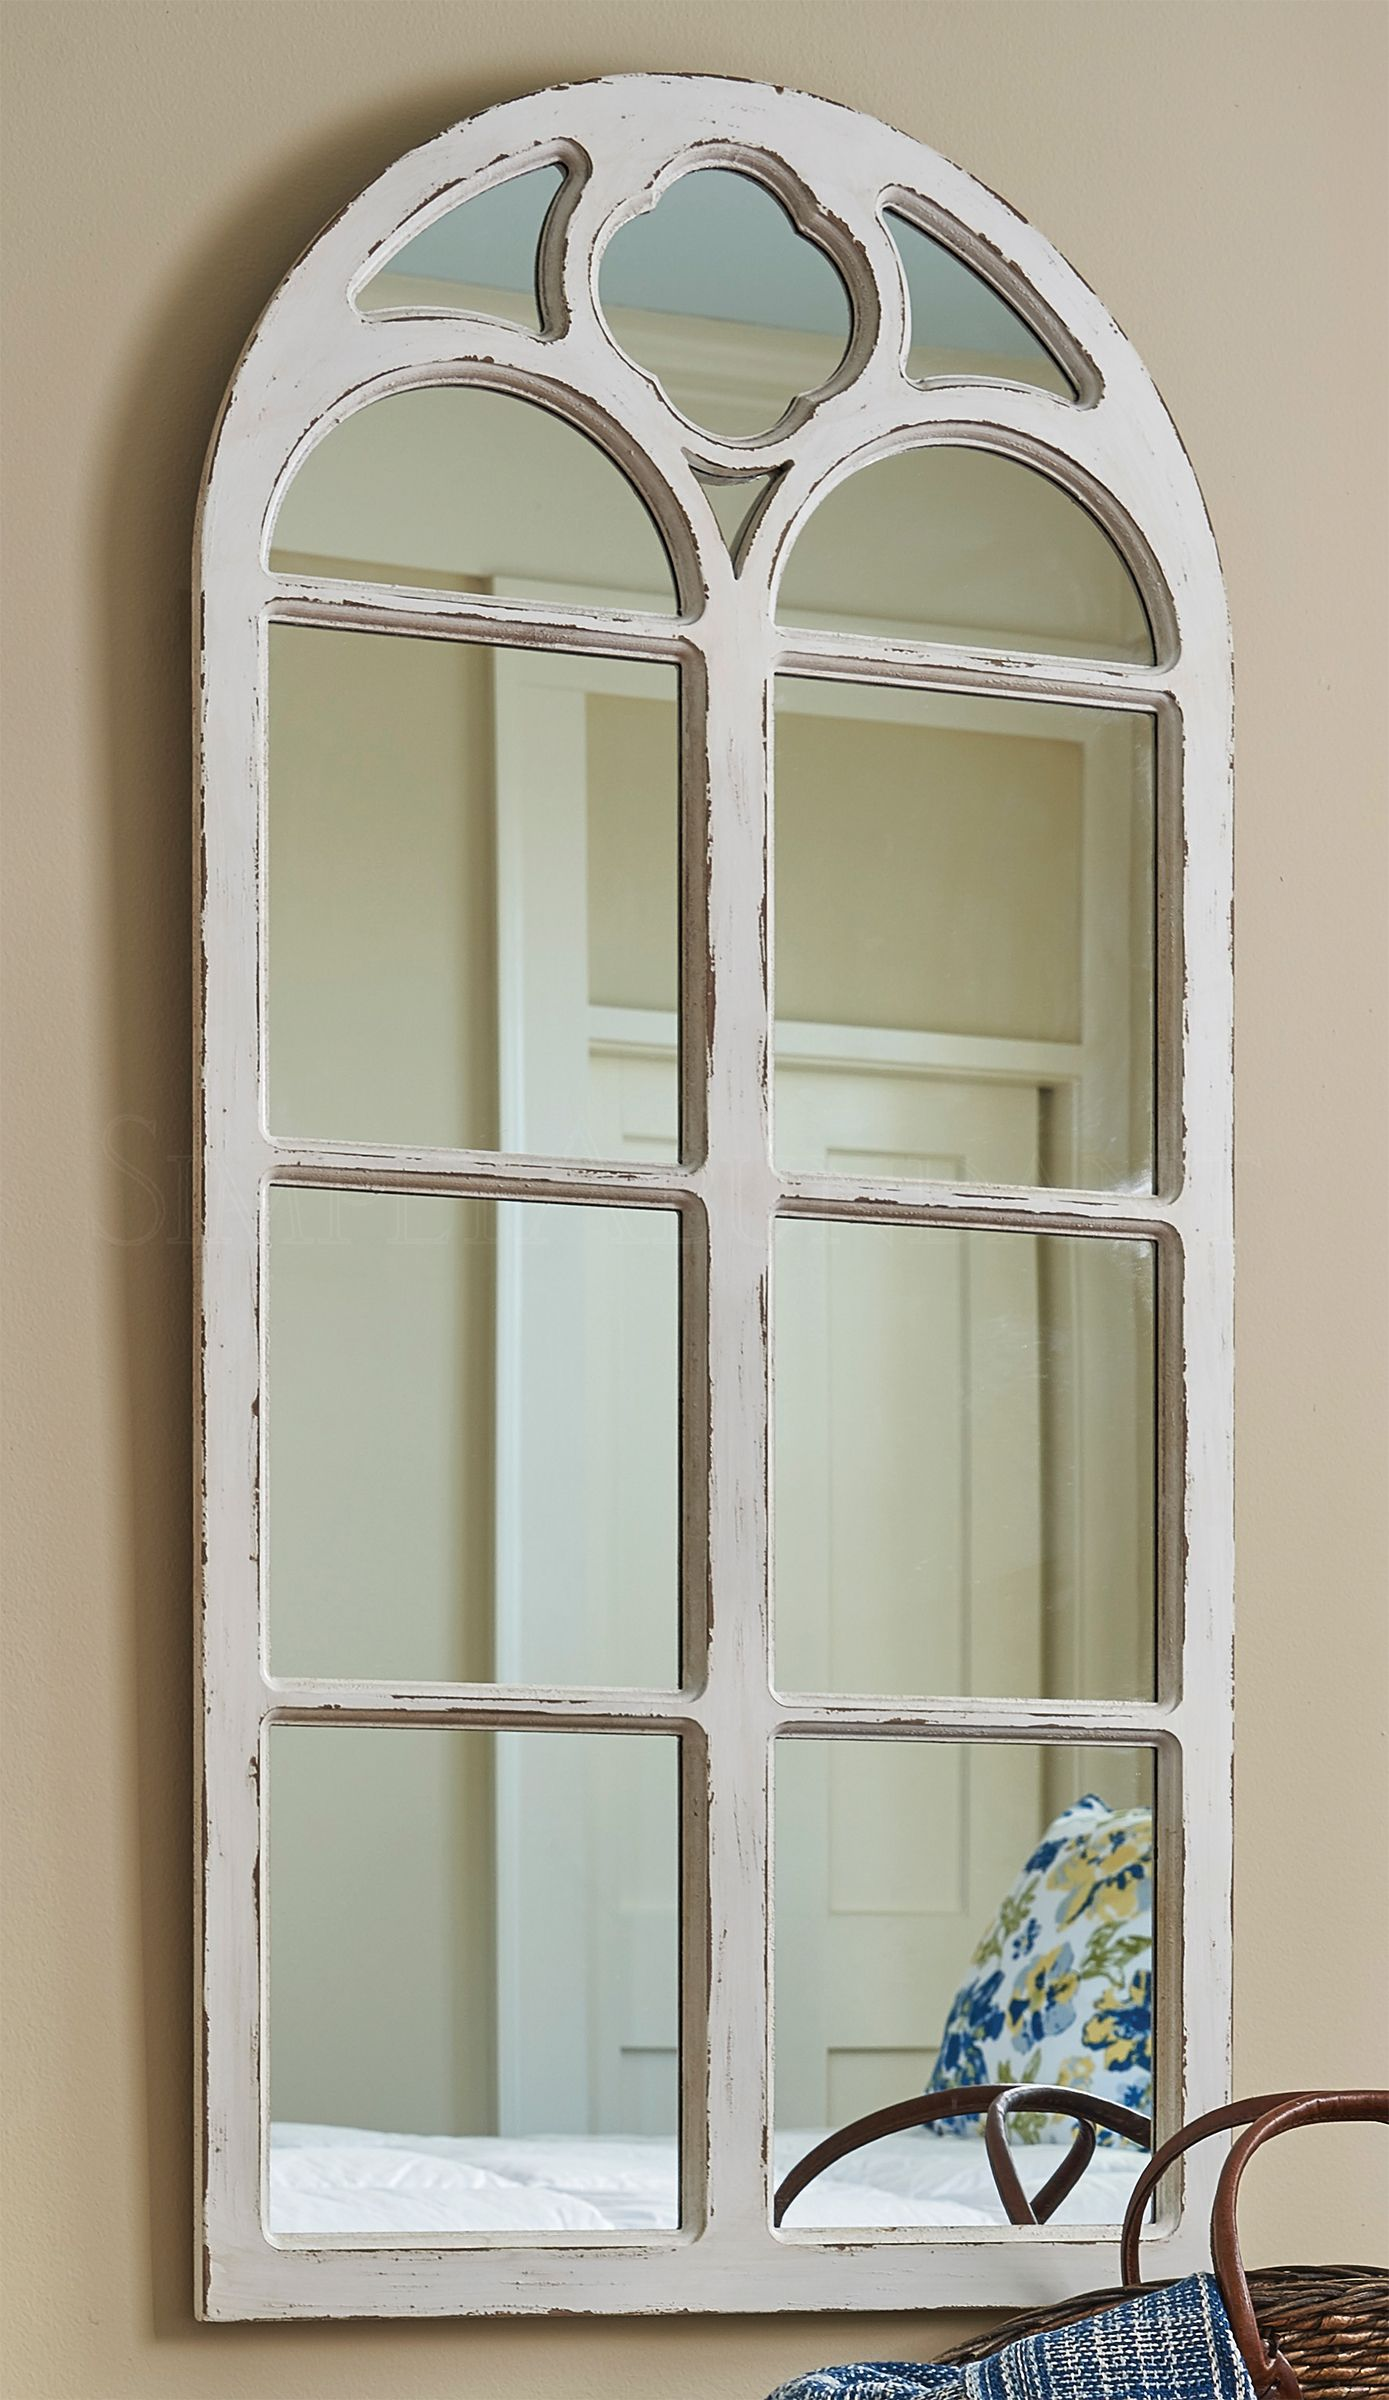 Window Mirror With Solid Wood Frame Distressed White Paint Mirror Wall Window Mirror Shabby Chic Bathroom